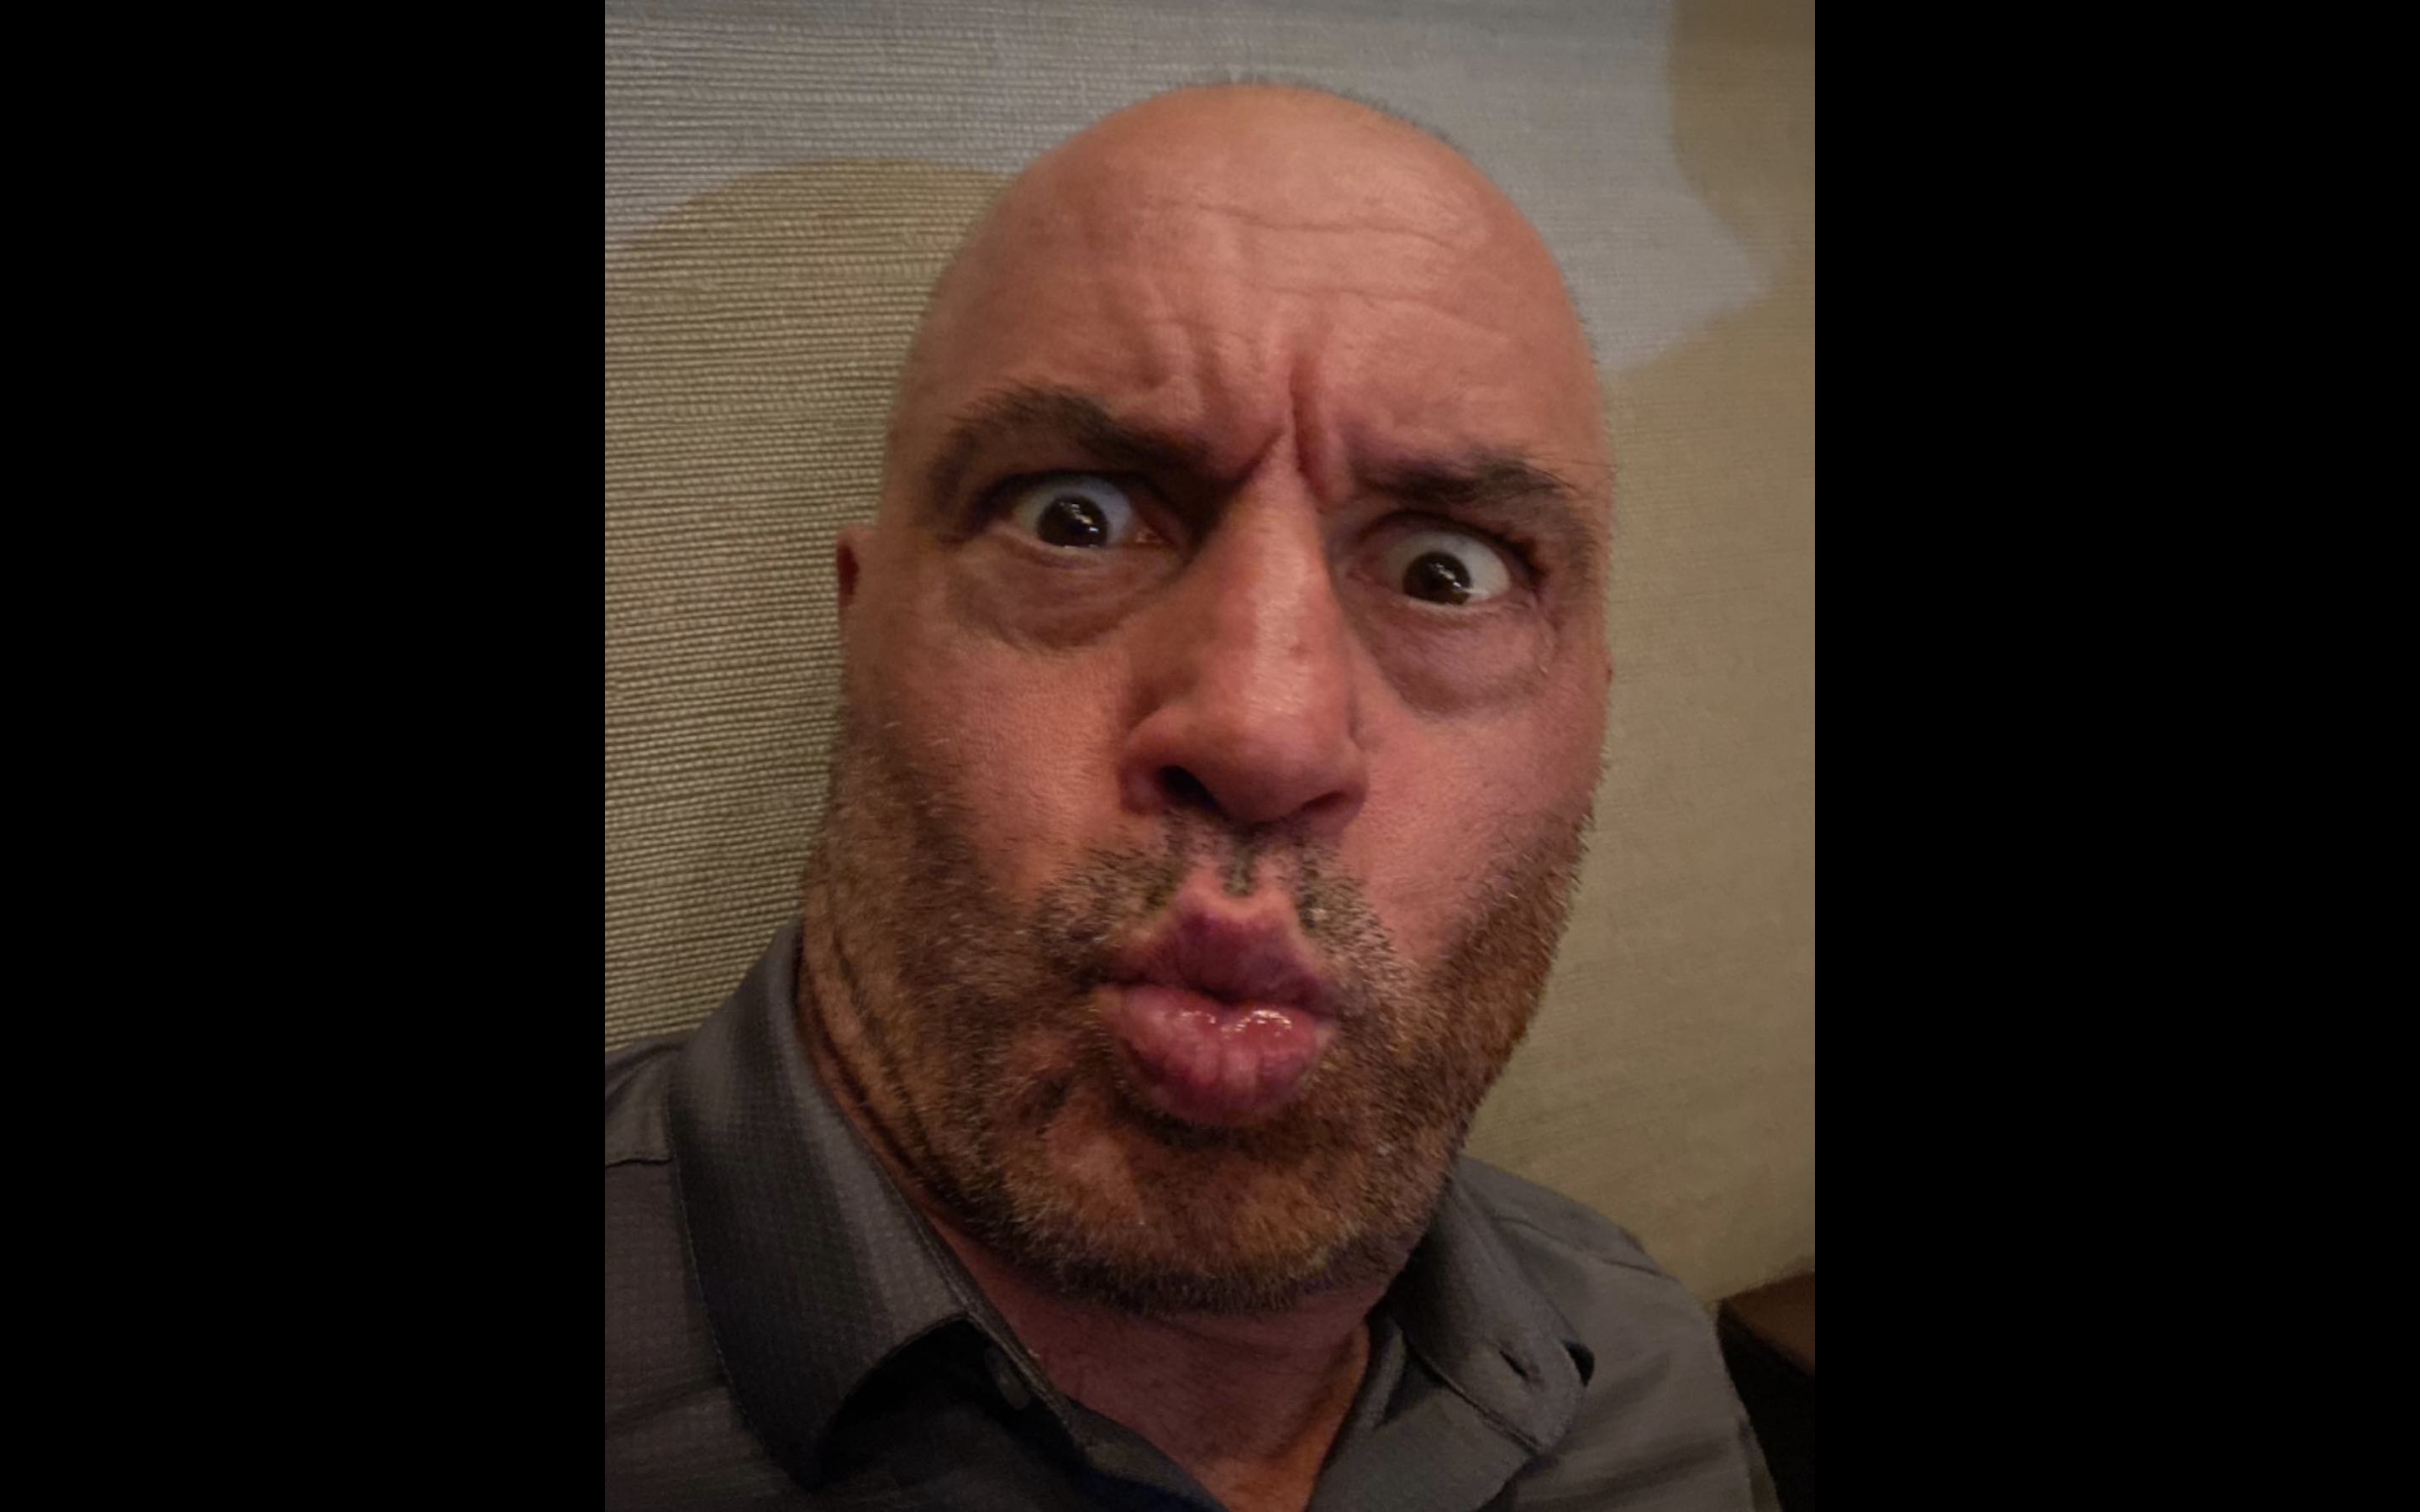 Podcaster Joe Rogan Officially Makes His Move To Texas Artslut Joseph james rogan (born august 11, 1967) is an american comedian, podcast host, and mixed martial arts color commentator. podcaster joe rogan officially makes